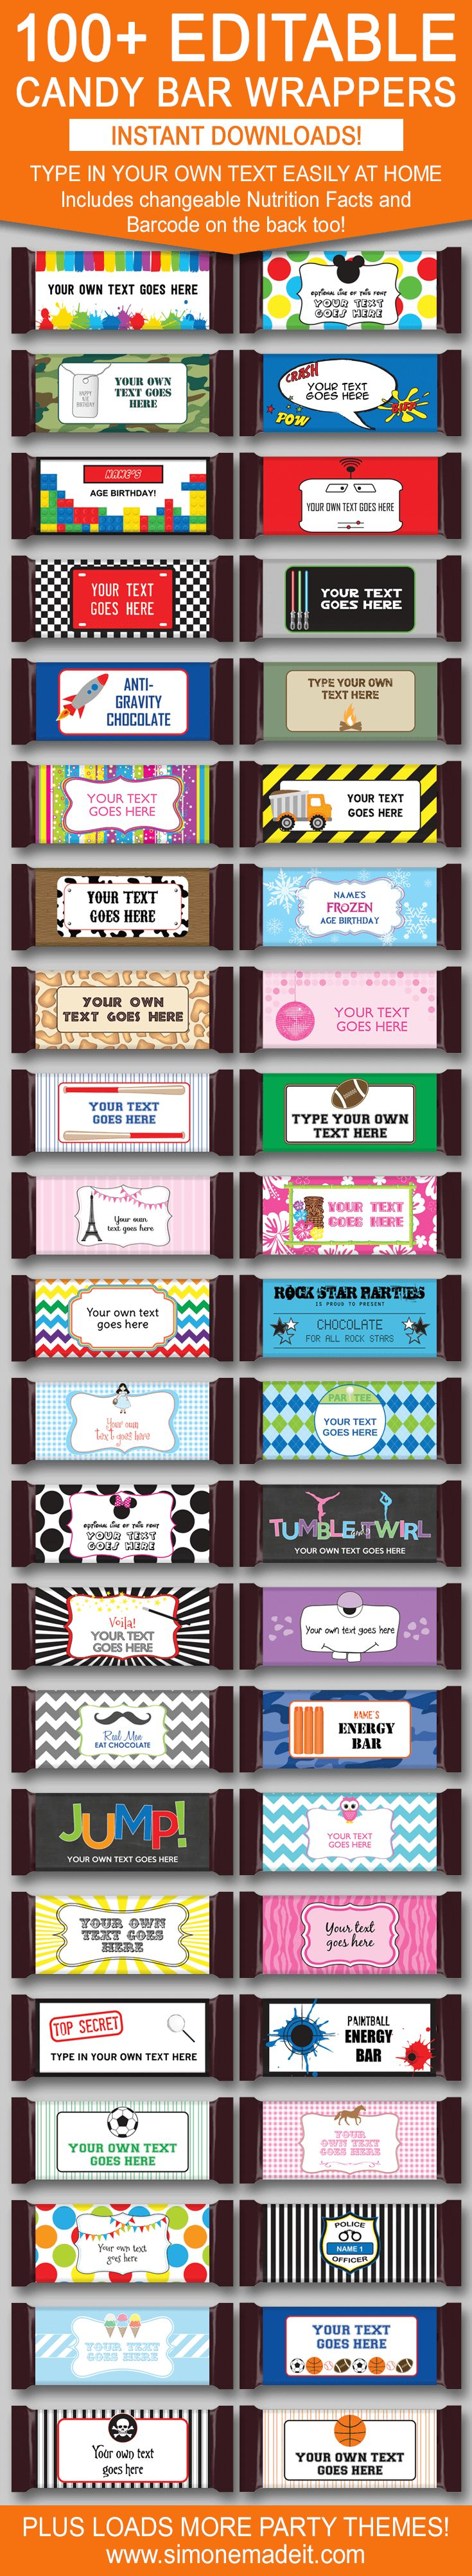 DIY Candy Bar Wrapper Templates | Birthday Party Favors | 1.55oz Hershey Candy Bars | Personalized Candy Bar Wrappers | Chocolate Bar Labels | INSTANT DOWNLOAD $3.00 via simonemadeit.com